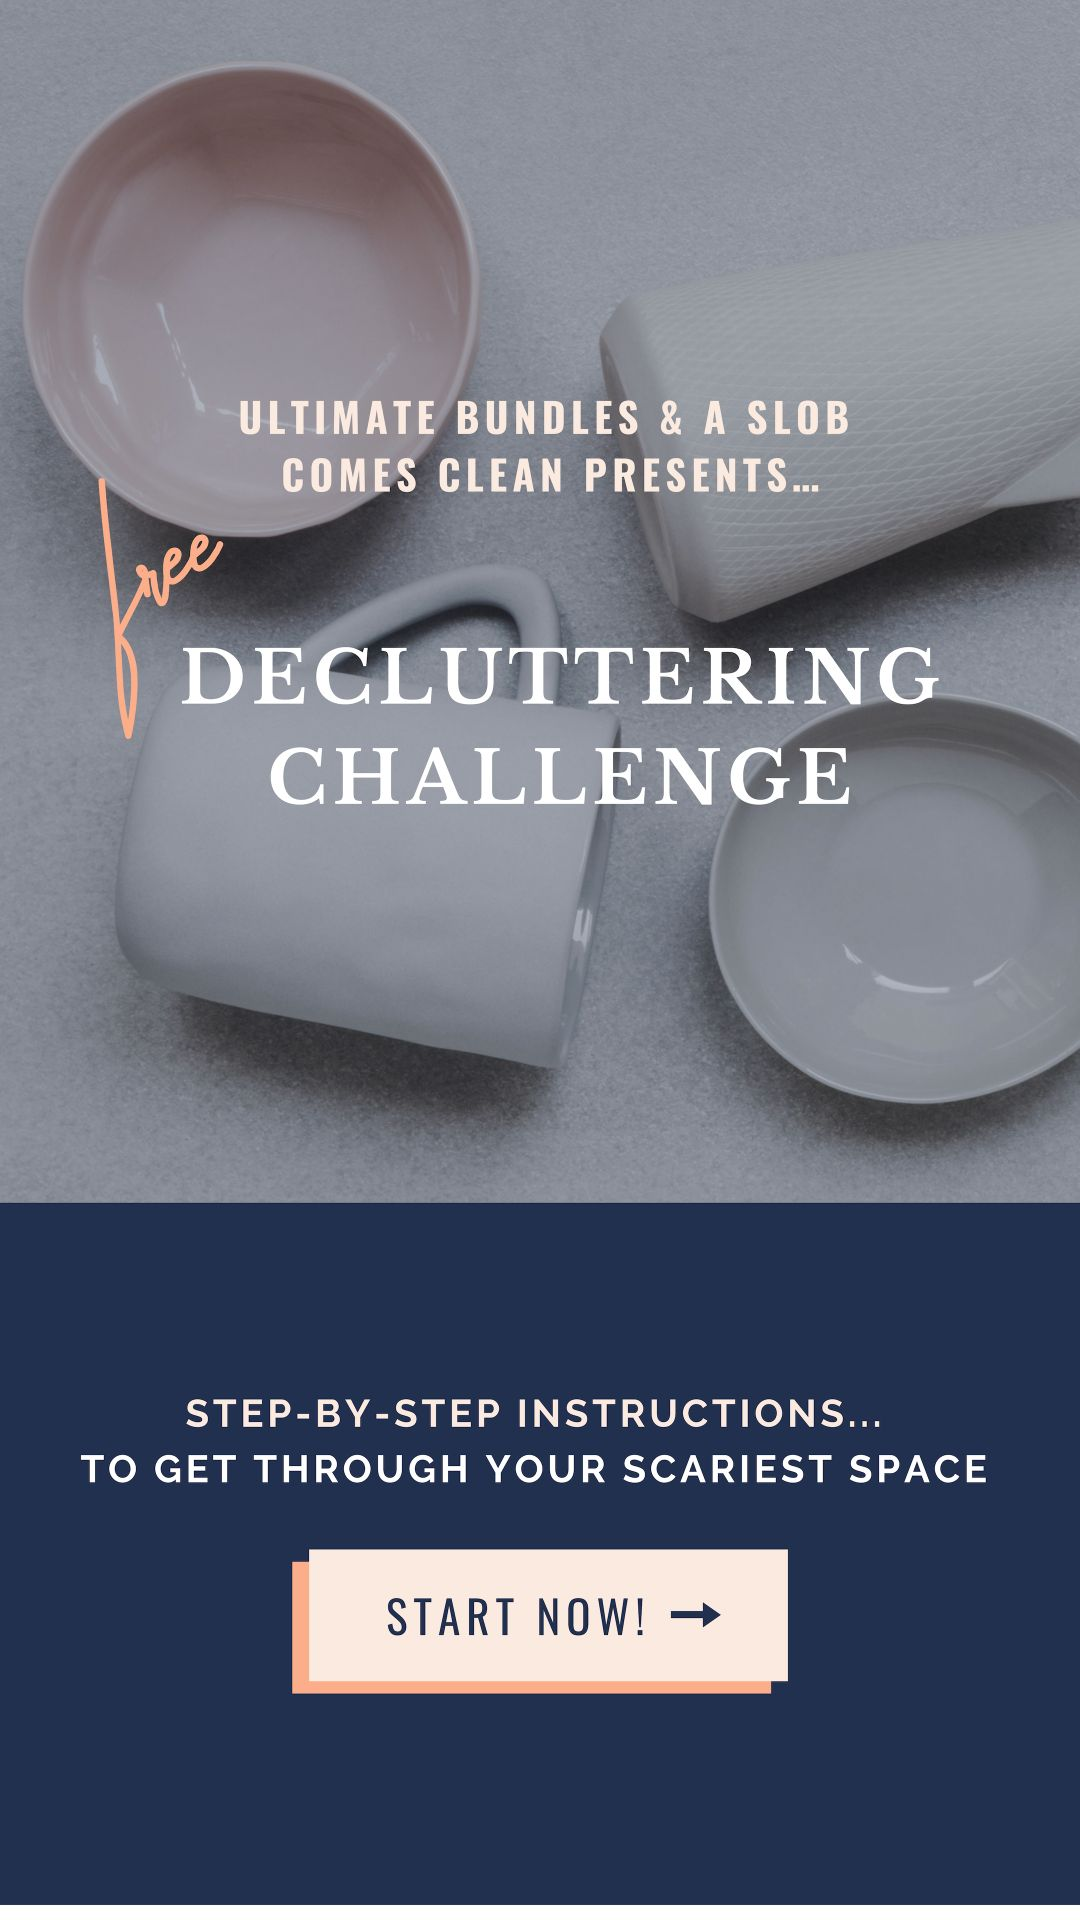 Join in the FREE Declutter Your Scariest Place Challenge this week, with free printable worksheets and guides to help you tackle that crazy corner, cabinet or closet.